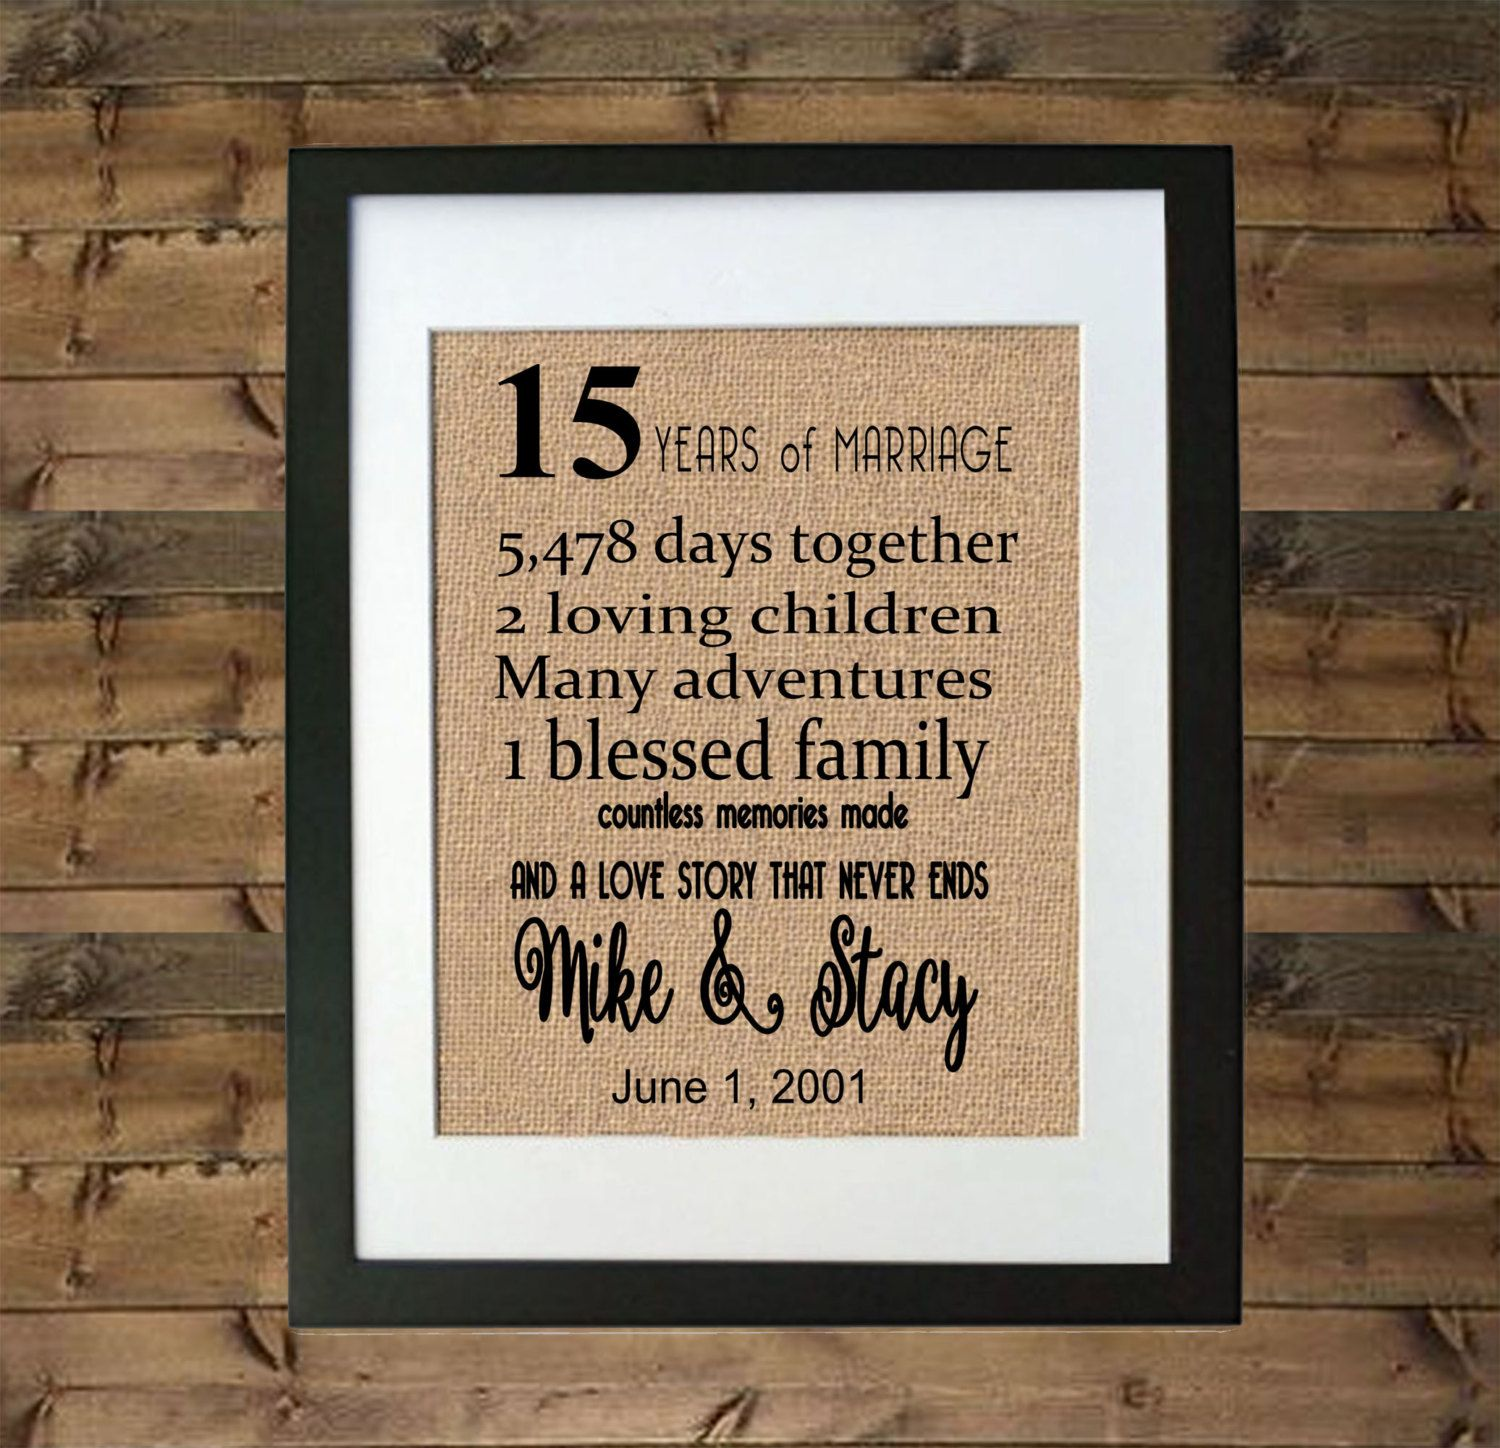 15 Year Anniversary Gift Framed Burlap Print Personalized For Her Him By Momakdesign On